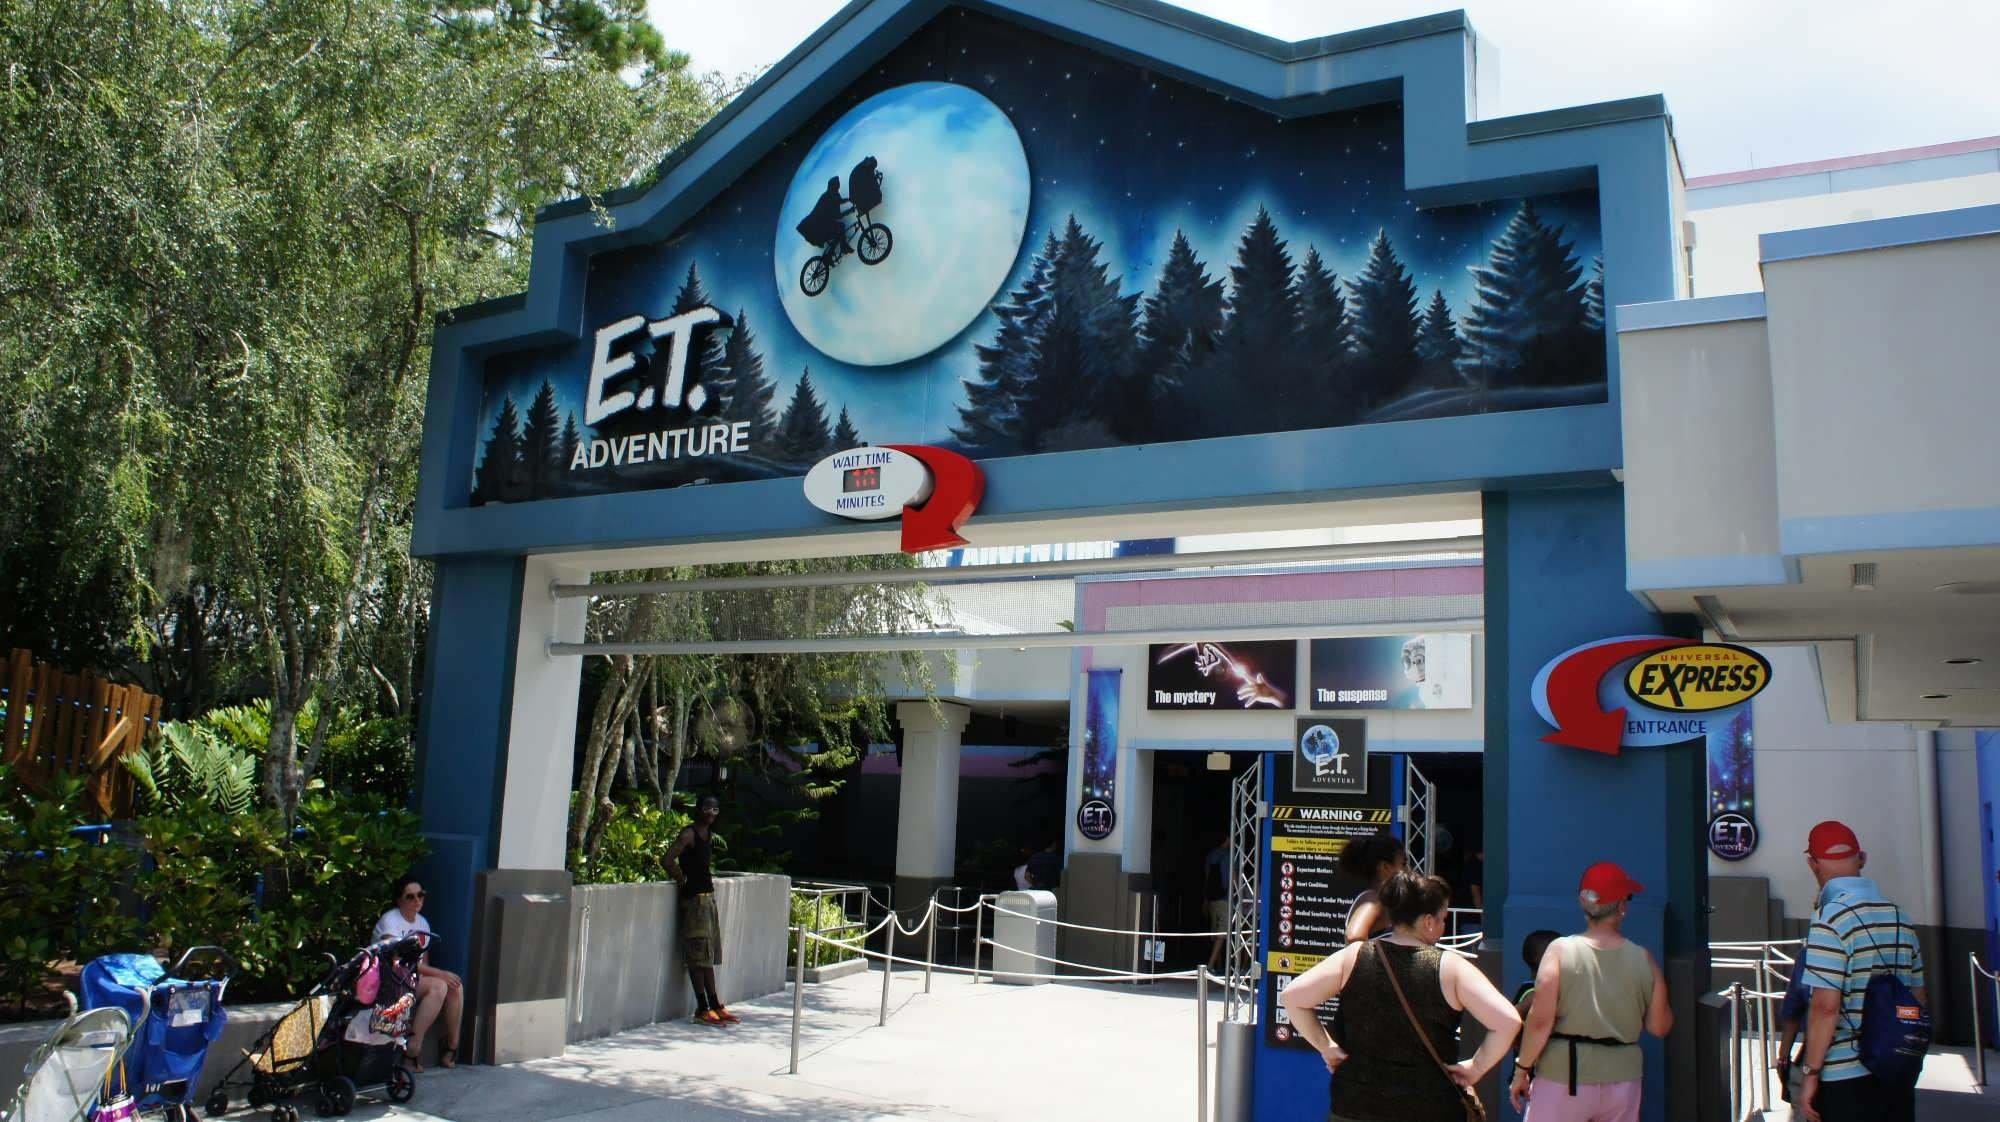 E.T. is one of the Best Attractions at Universal Studios